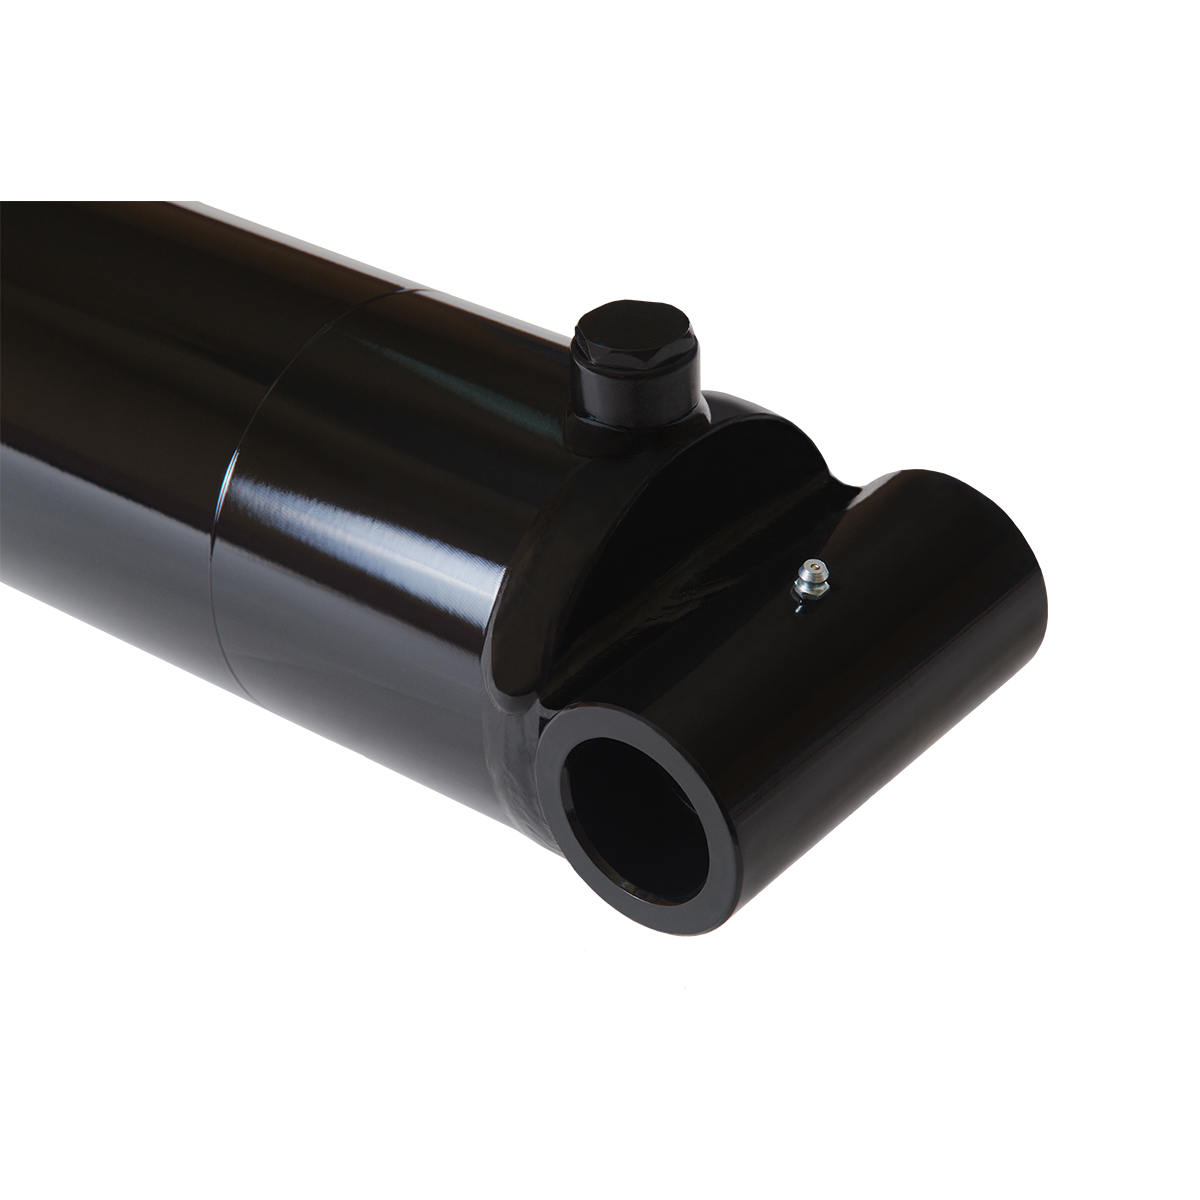 4 bore x 40 stroke hydraulic cylinder, welded cross tube double acting cylinder | Magister Hydraulics